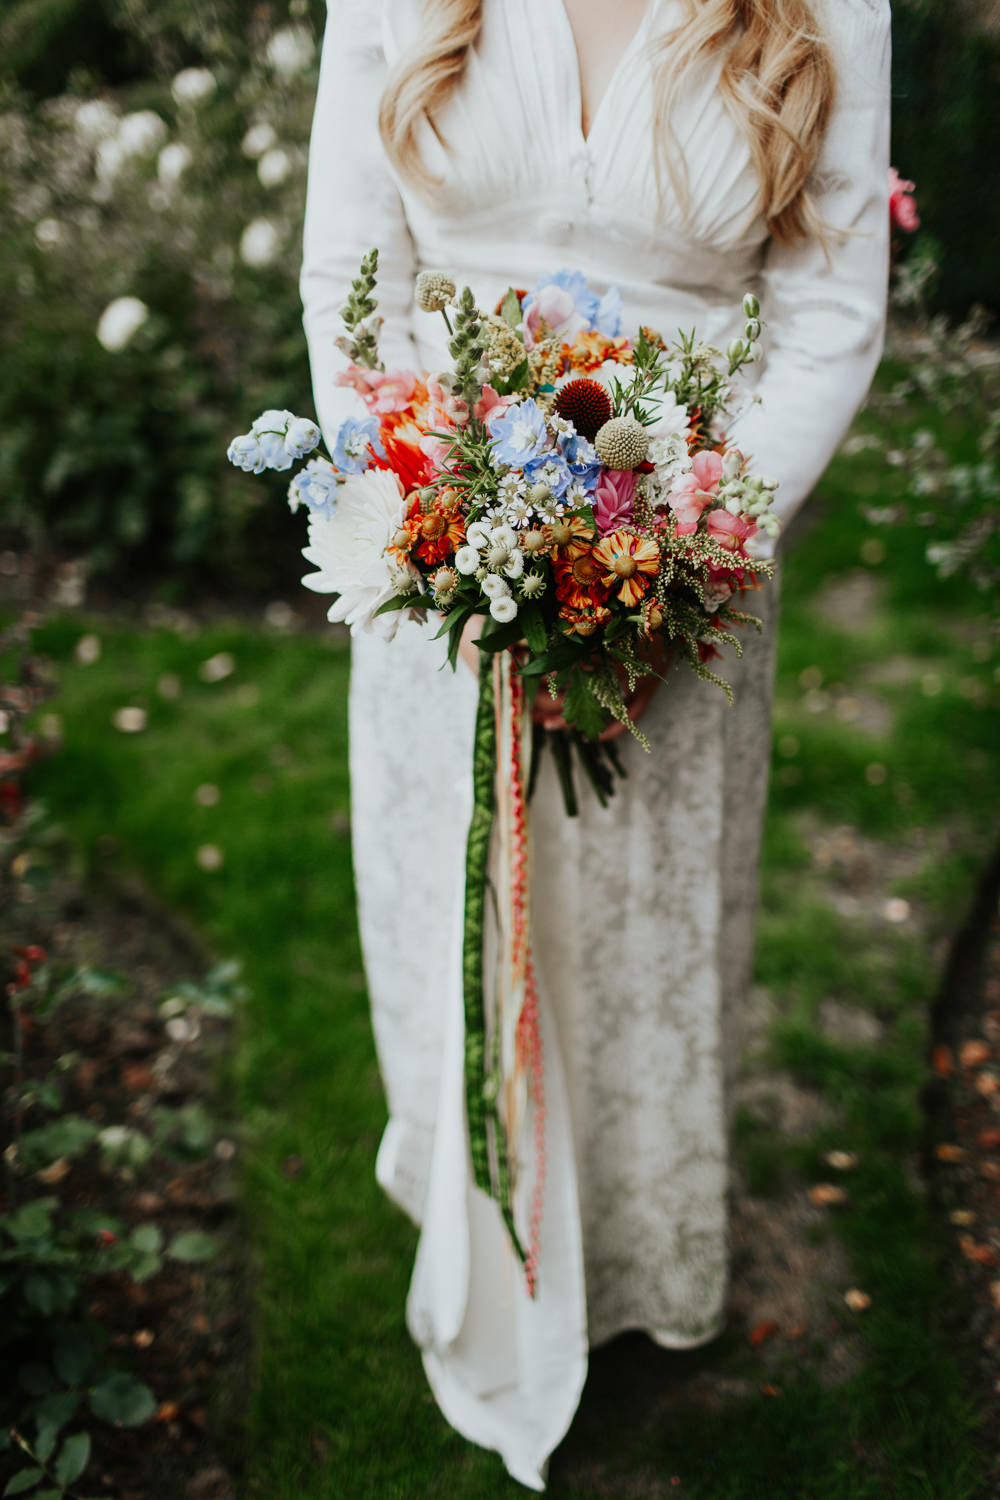 Bouquet Flowers Bride Bridal Colourful Ribbons Retro Vintage Dahlias Snap Dragons Crespedia Pennard House Wedding Oxi Photography